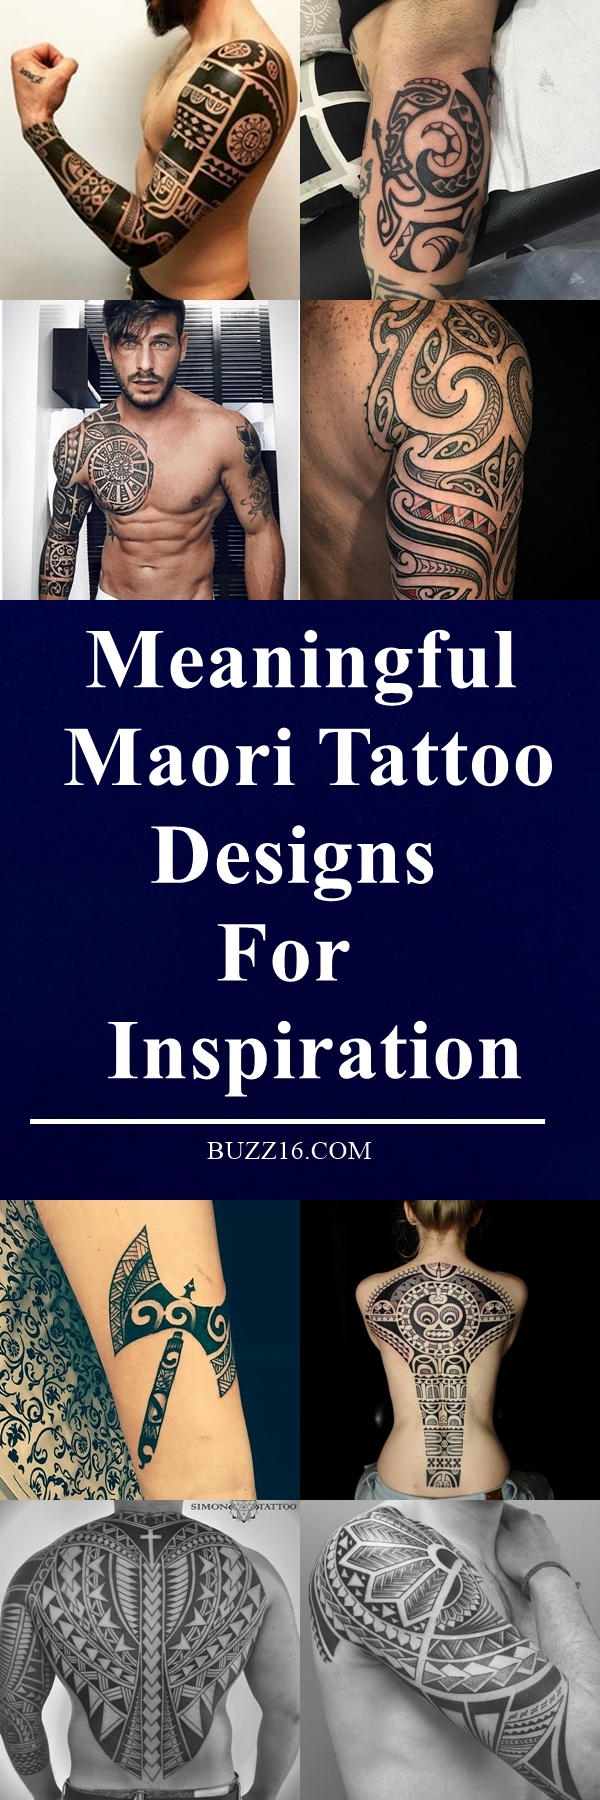 40 Meaningful Maori Tattoo Designs For Inspiration